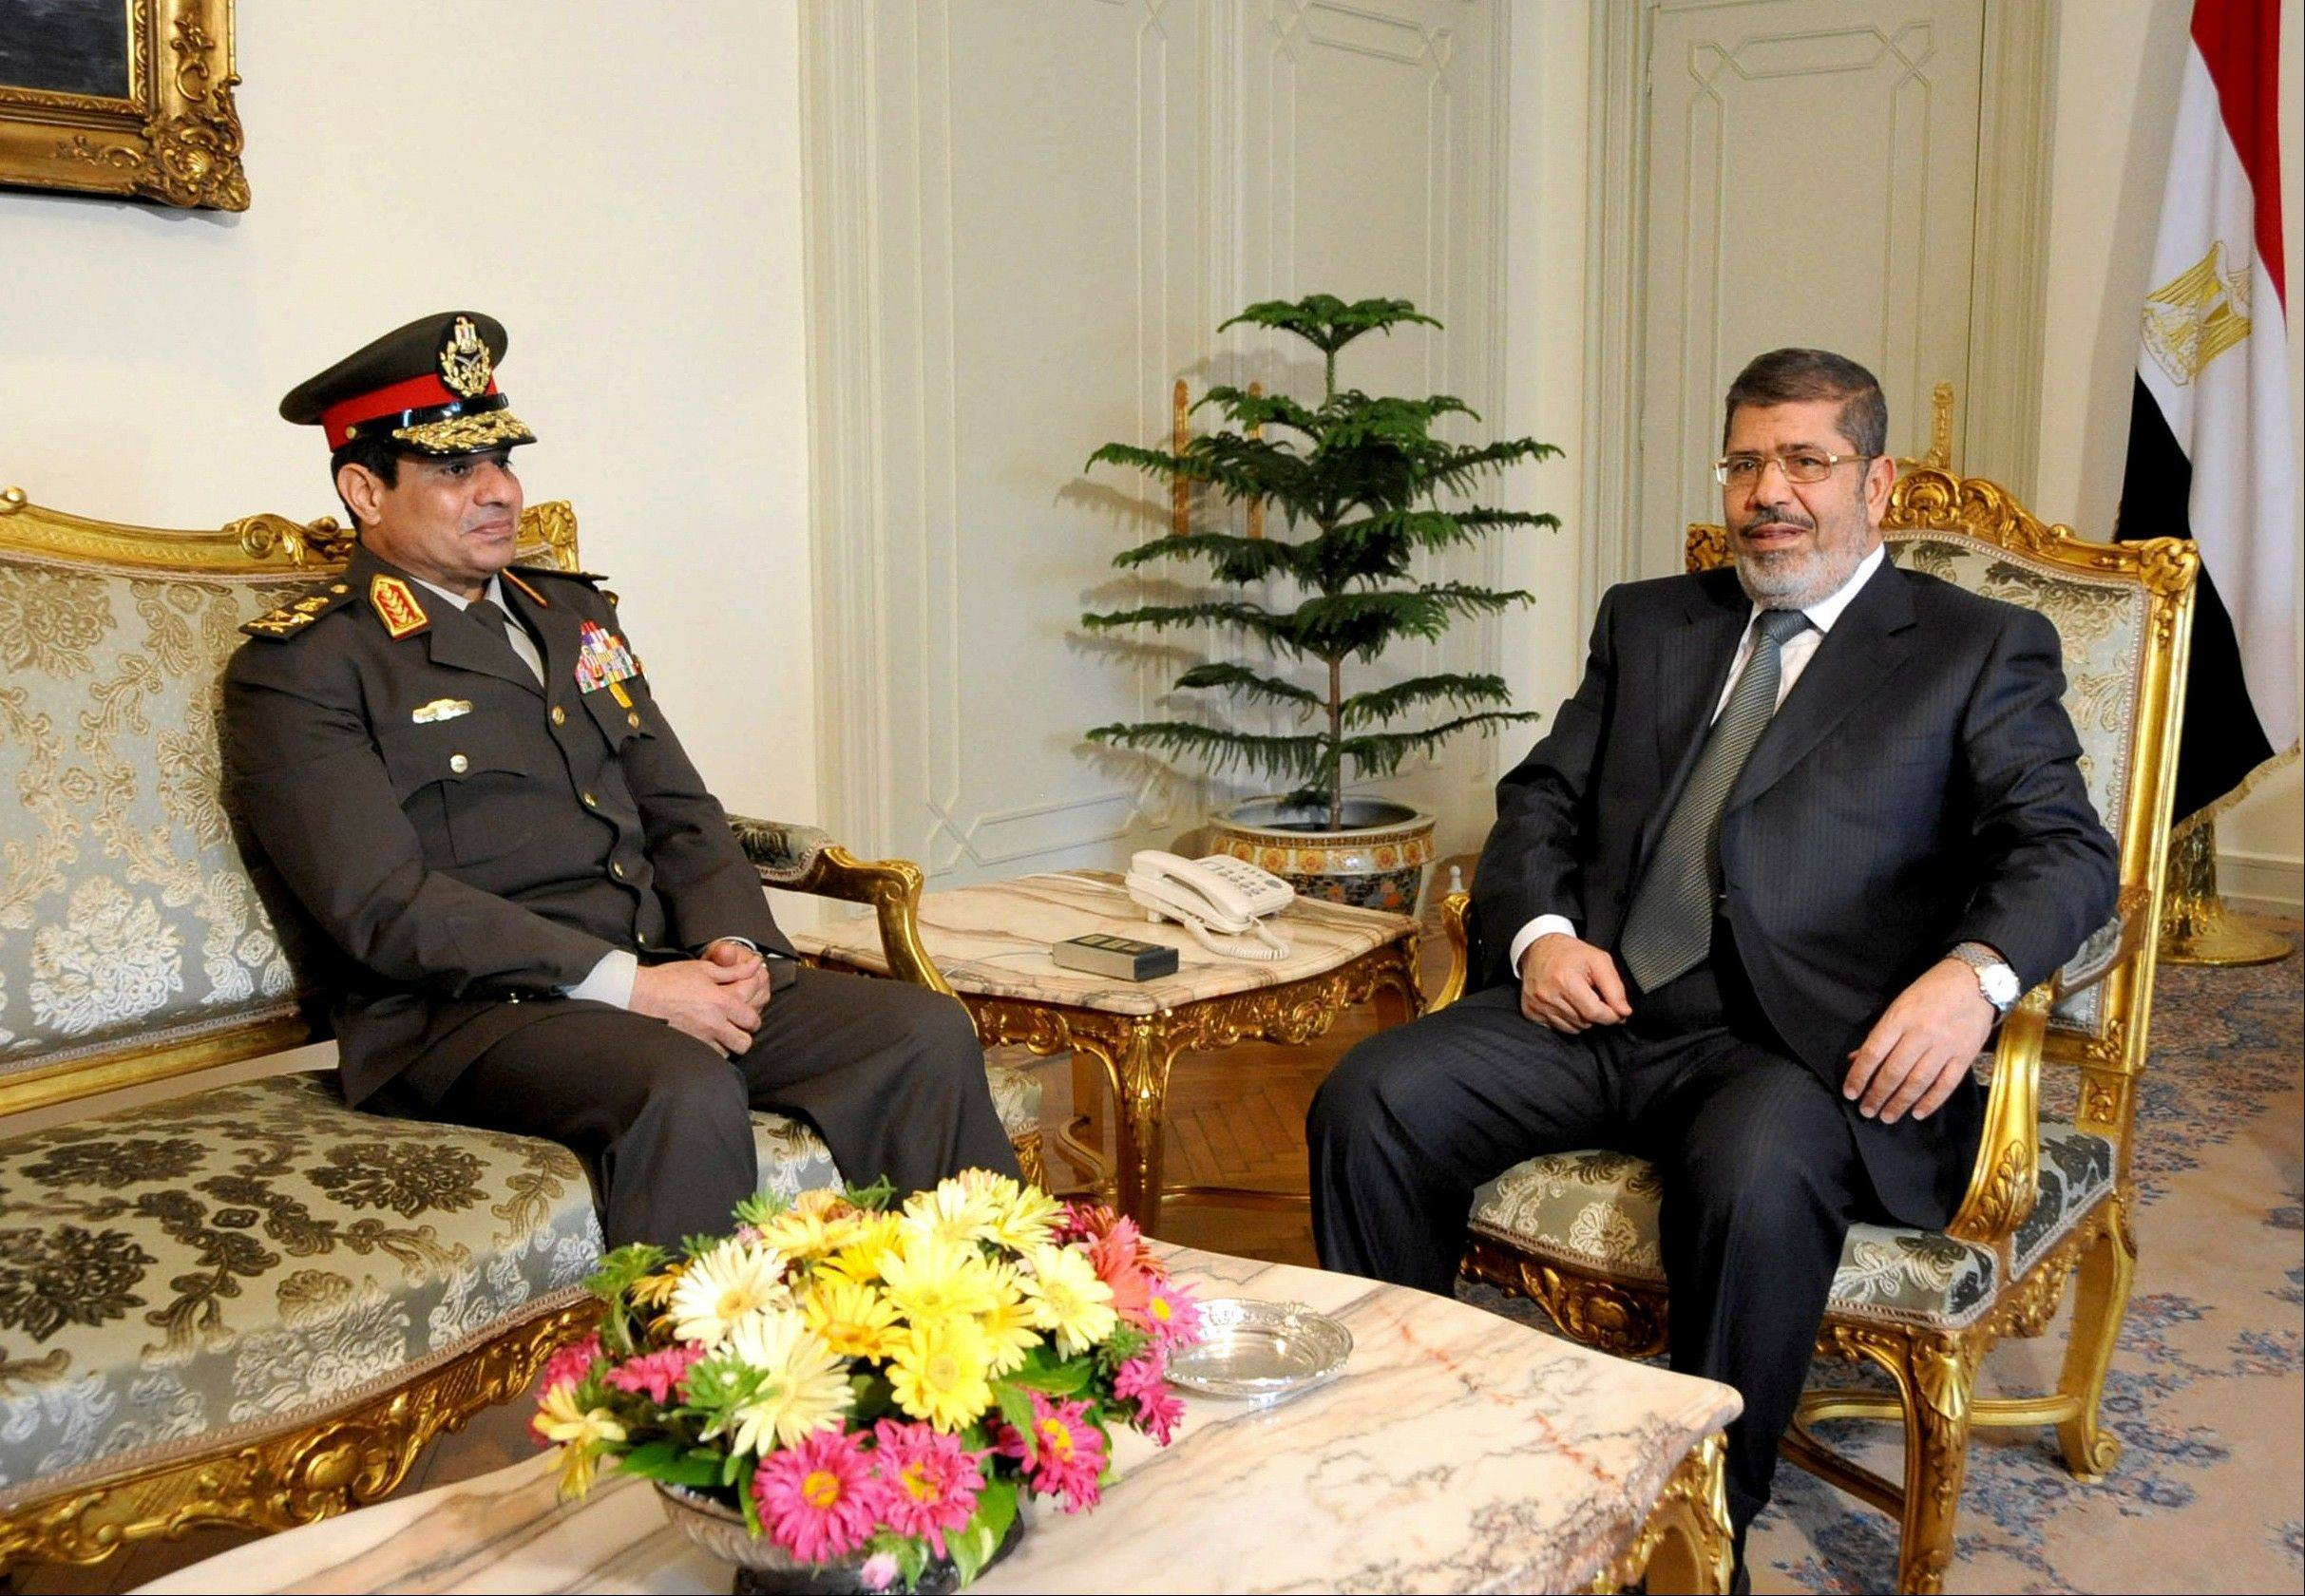 Associated Press/Feb, 21, 2013 Egyptian Minister of Defense, Lt. Gen. Abdel-Fattah el-Sissi, left, meets with Egyptian President Mohammed Morsi at the presidential headquarters in Cairo, Egypt.